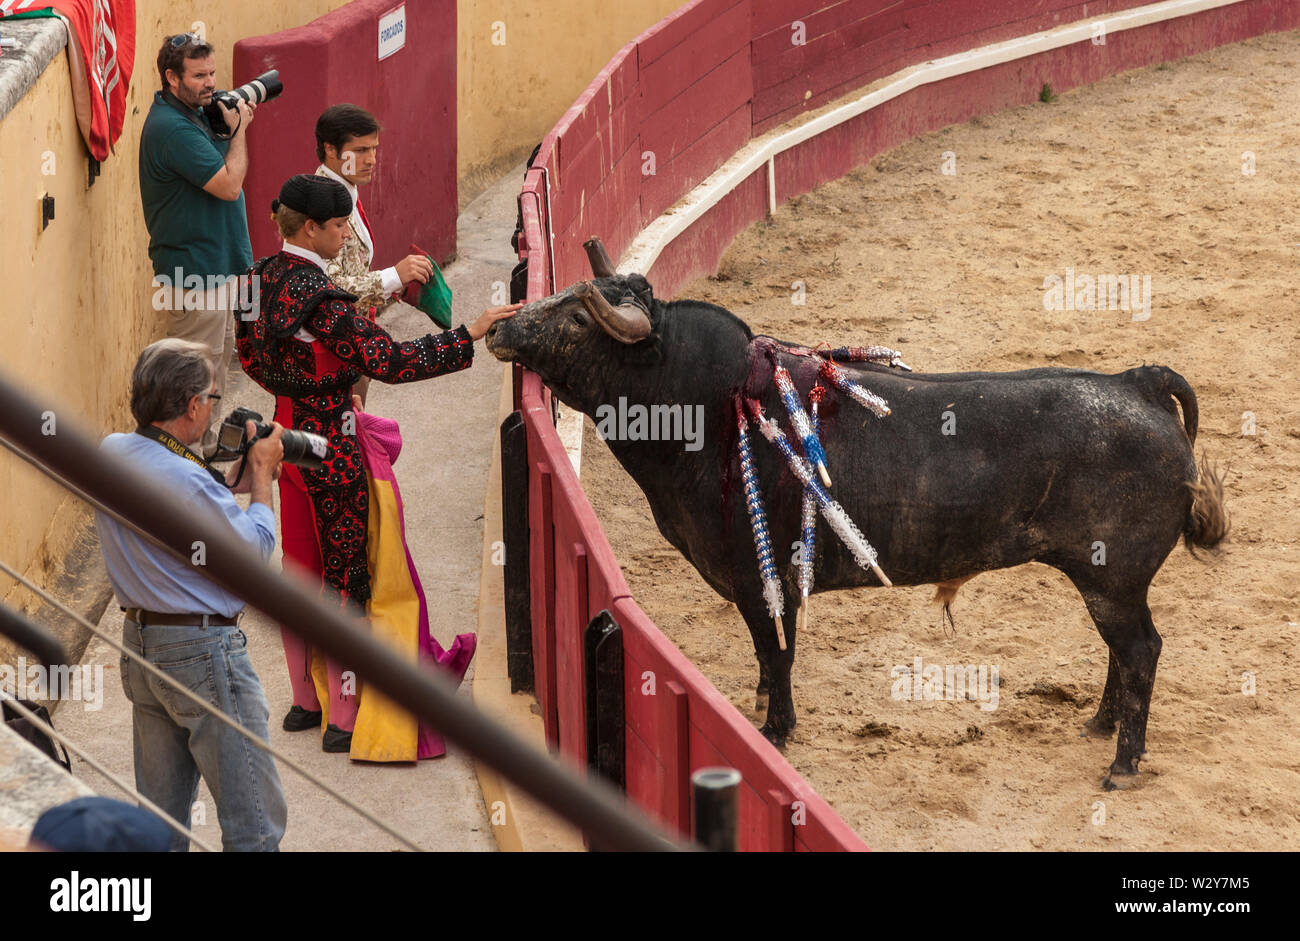 A passive bull with banderillas in its neck is stroked on its nose by a Matador during a lull in a bullfight. - Stock Image